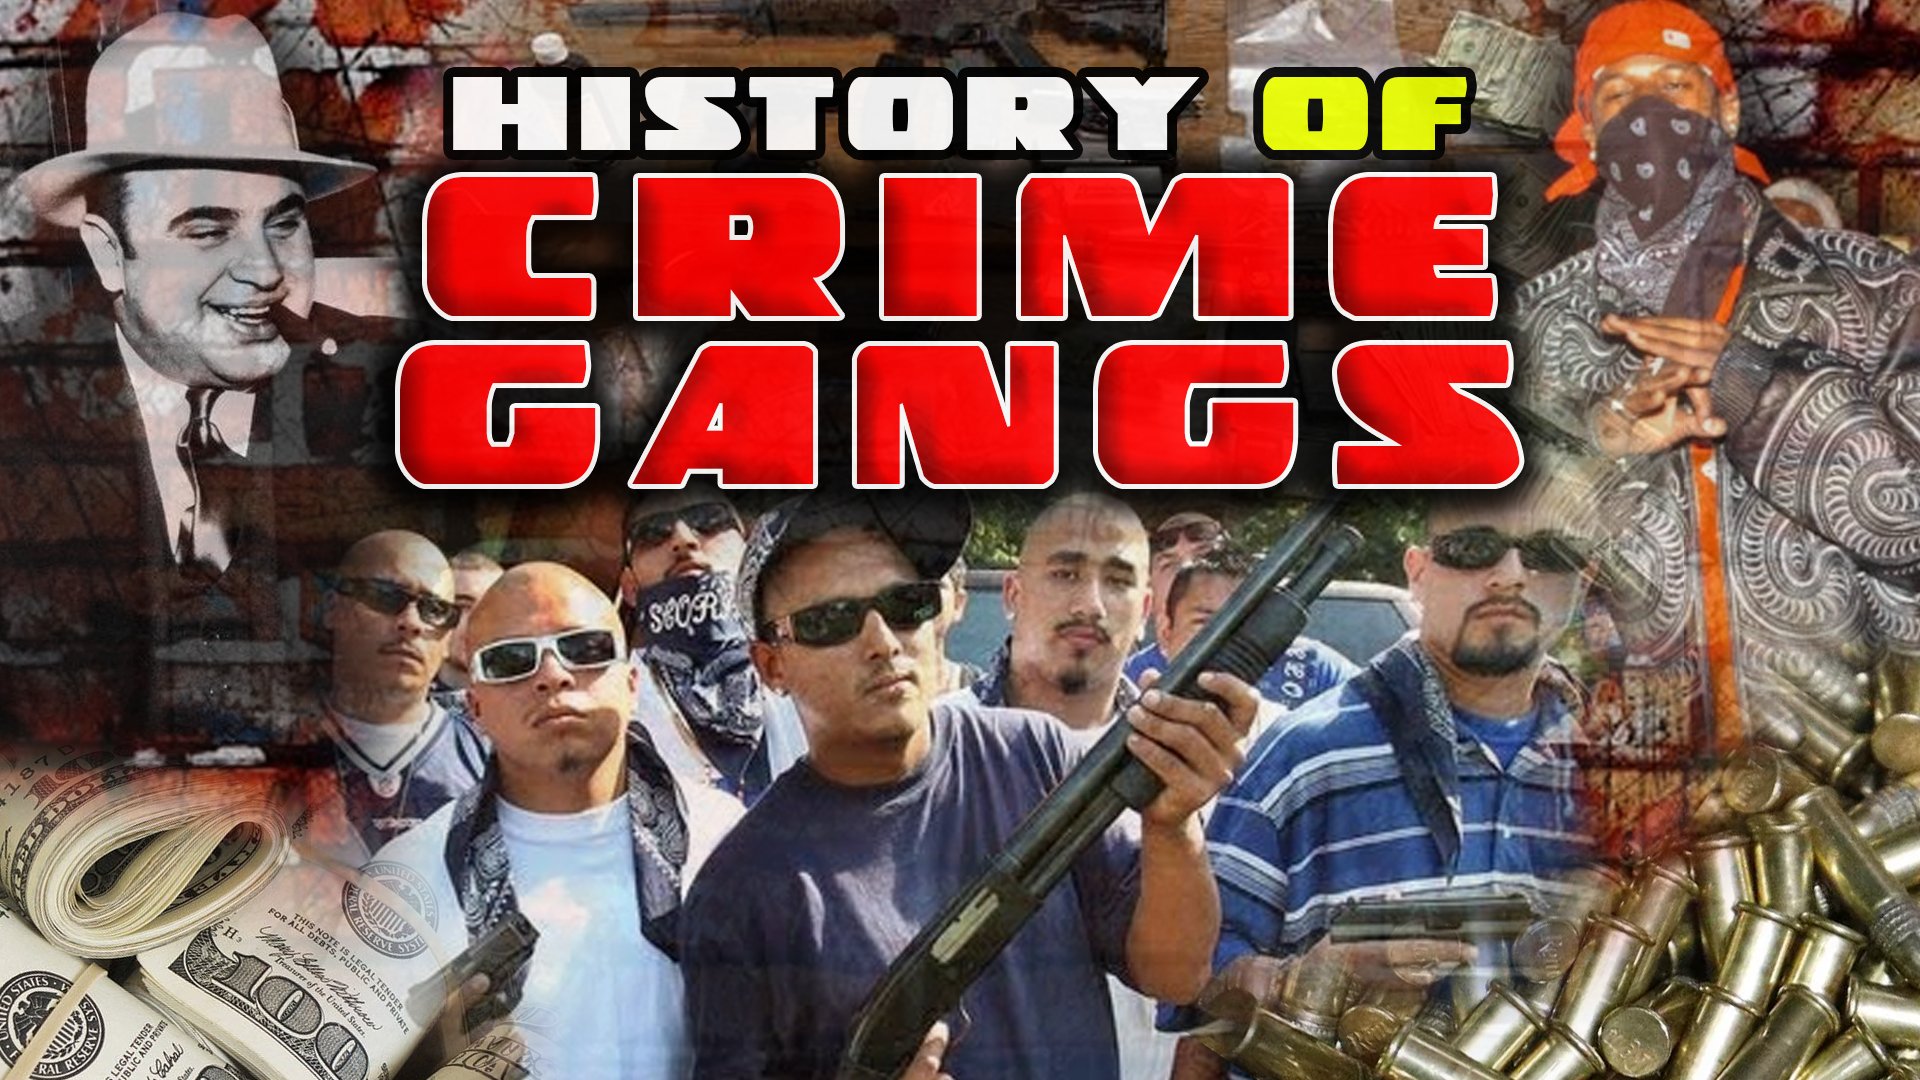 History of Crime Gangs